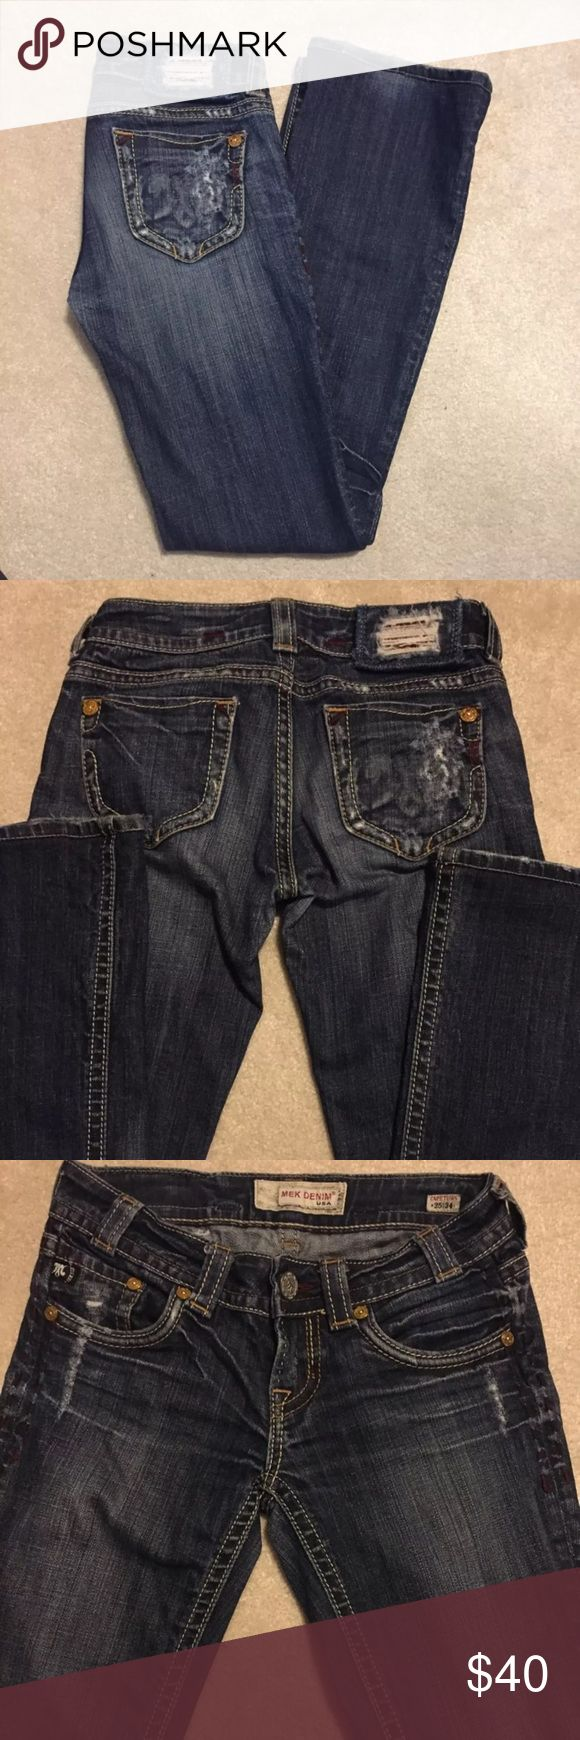 MEK jeans Great condition, boot cute size: 25X31 MEK Jeans Boot Cut